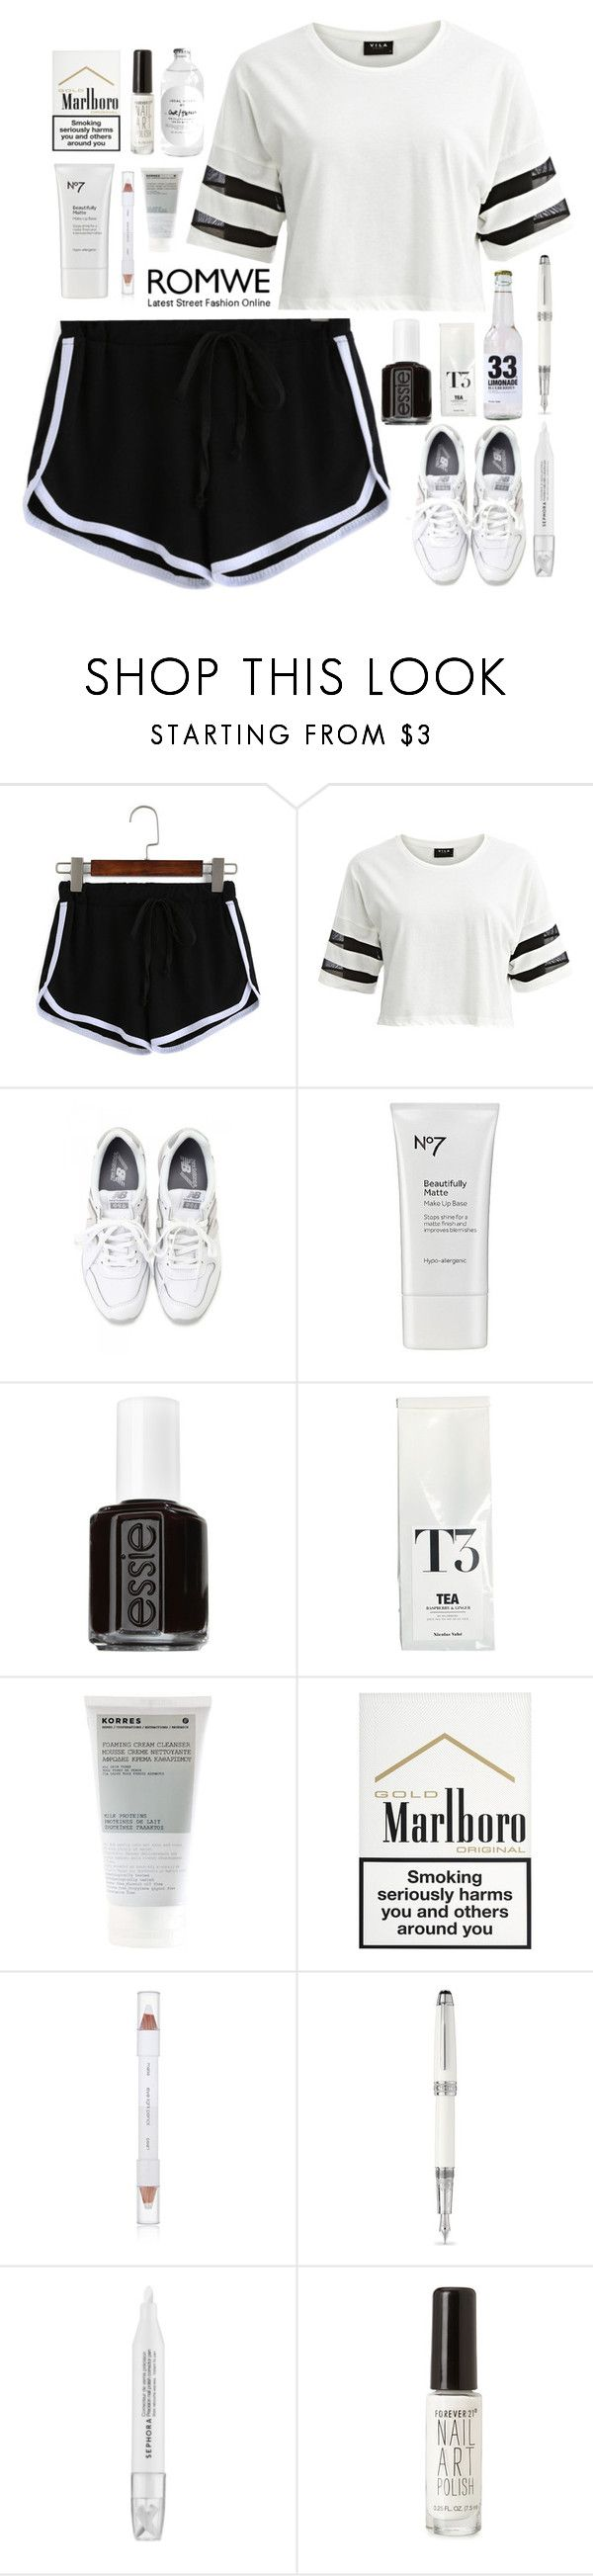 """""""black 'n' white"""" by annamausi ❤ liked on Polyvore featuring VILA, New Balance, Boots No7, Essie, Nicolas Vahé, Korres, shu uemura, Sephora Collection and Forever 21"""